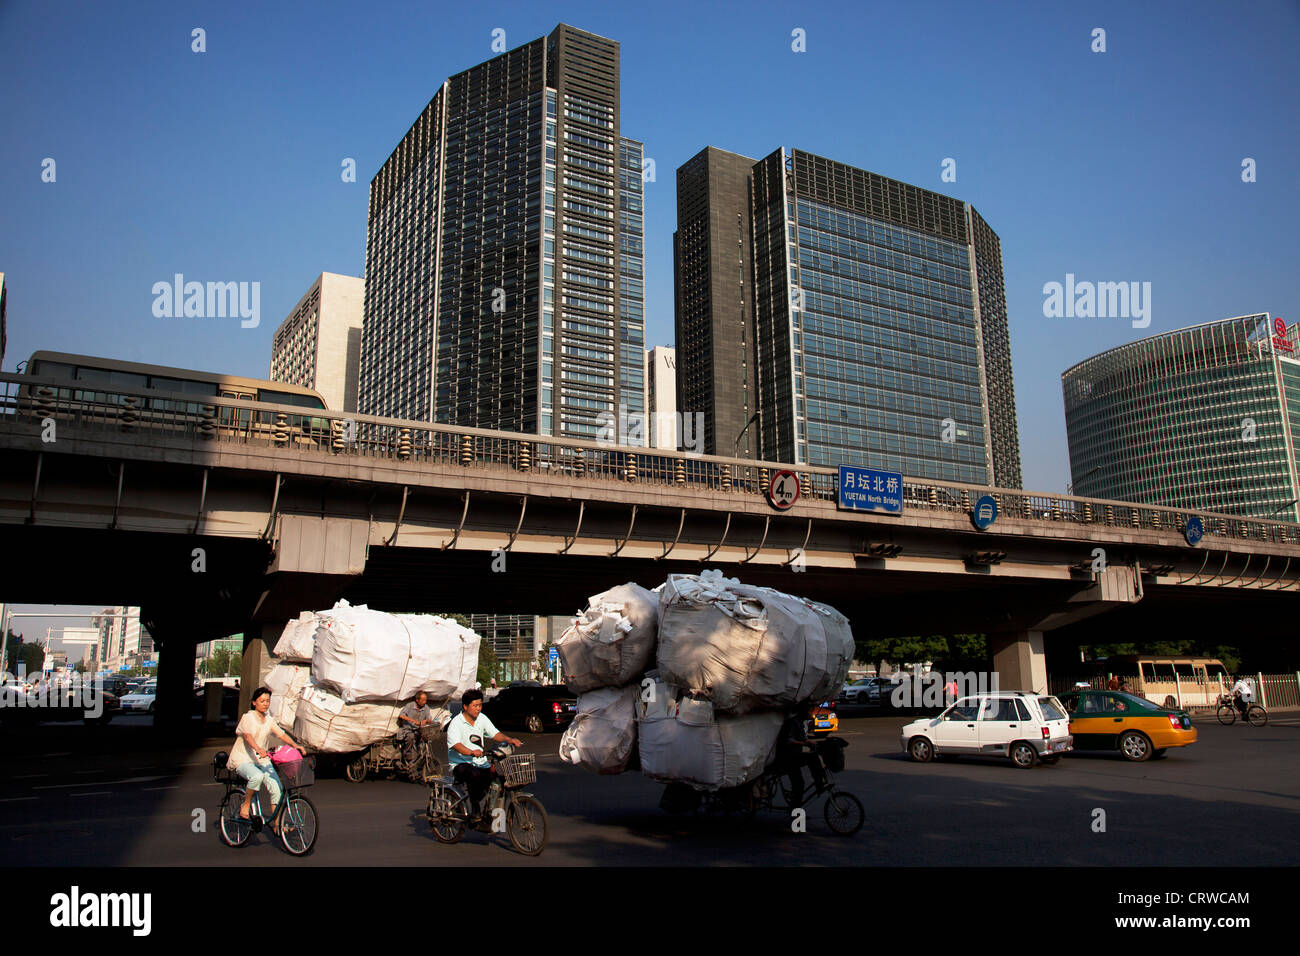 Banks and banking institutions along Financial Street are passed by commuters at a busy intersection, Beijing, China. - Stock Image